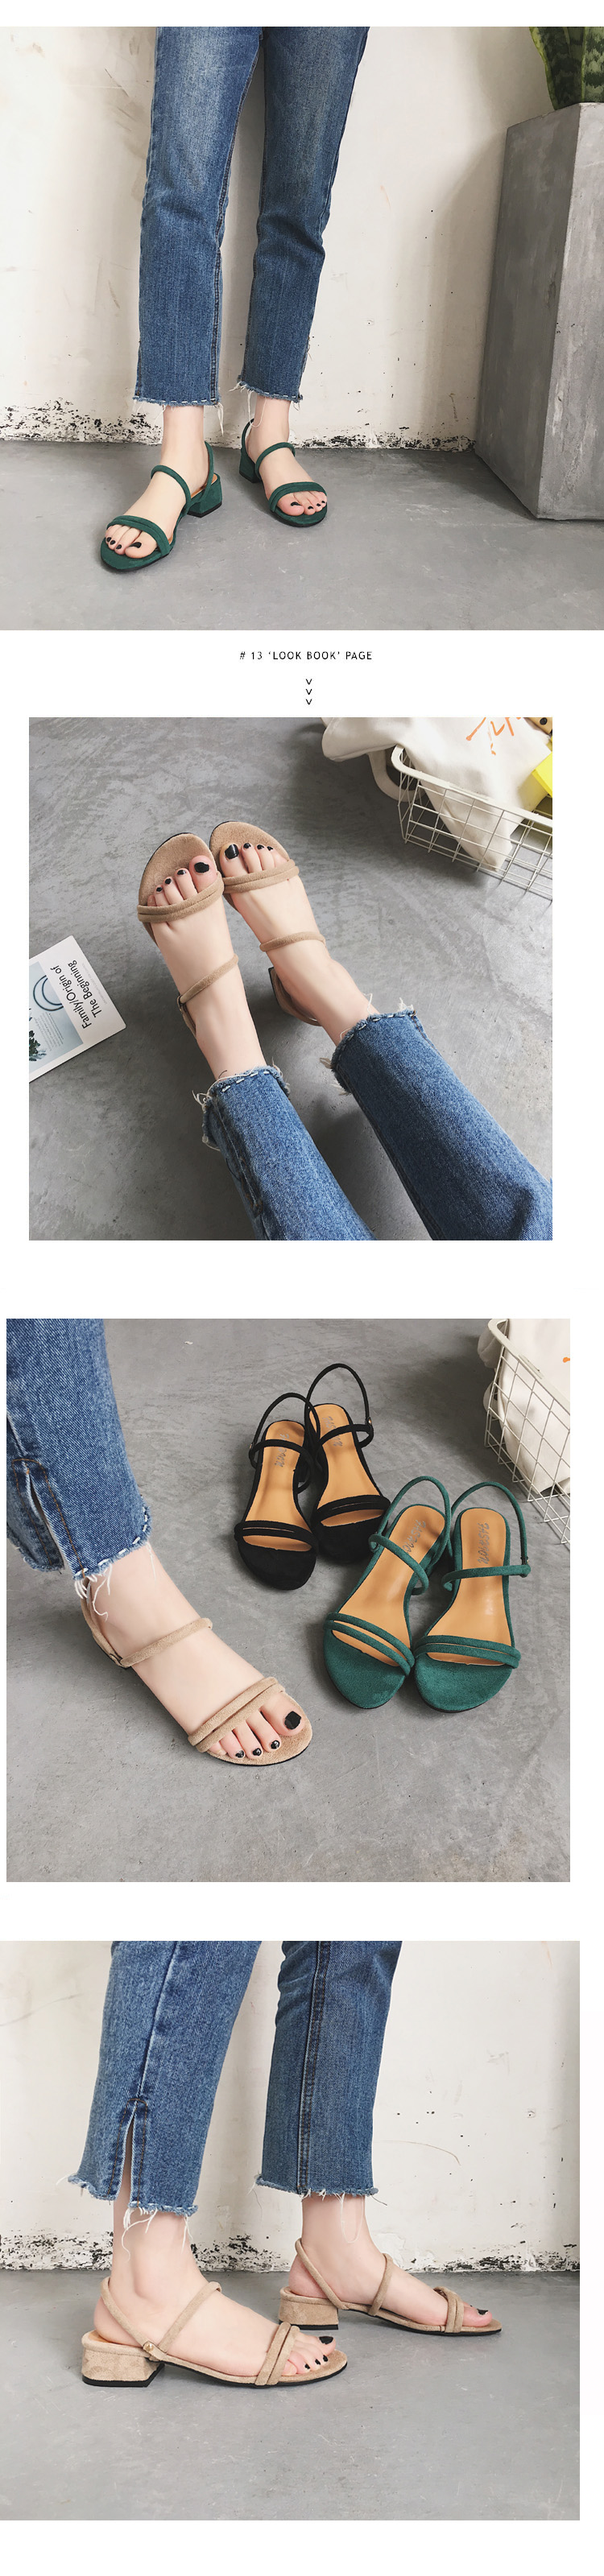 HTB1BoJGlyCYBuNkHFCcq6AHtVXaV new Flat outdoor slippers Sandals foot ring straps beaded Roman sandals fashion low slope with women's shoes low heel shoes x69